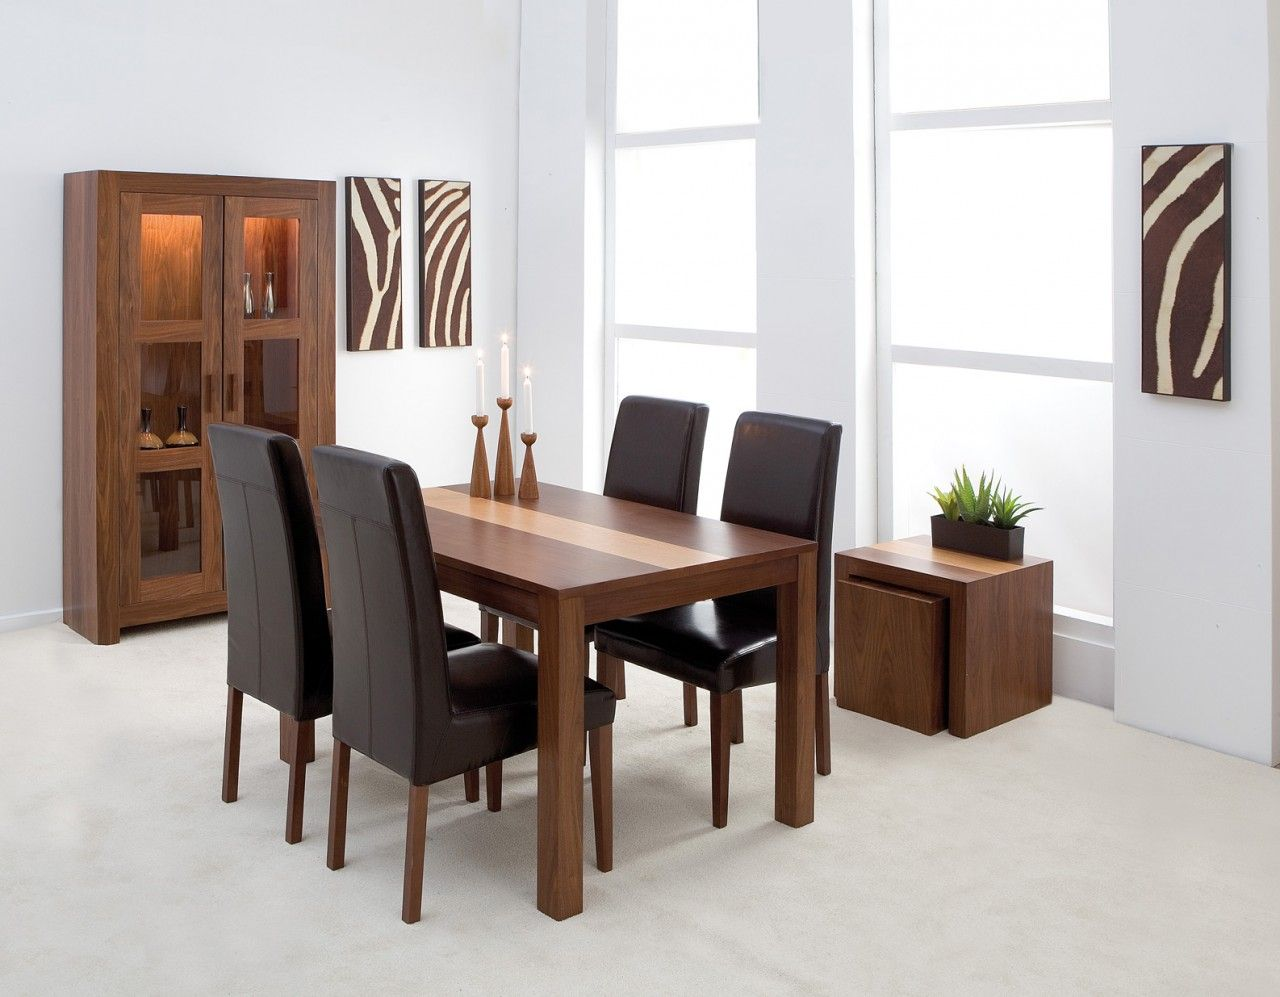 4 Chair Dining Table Set 4 Chair Dining Table Dining Room